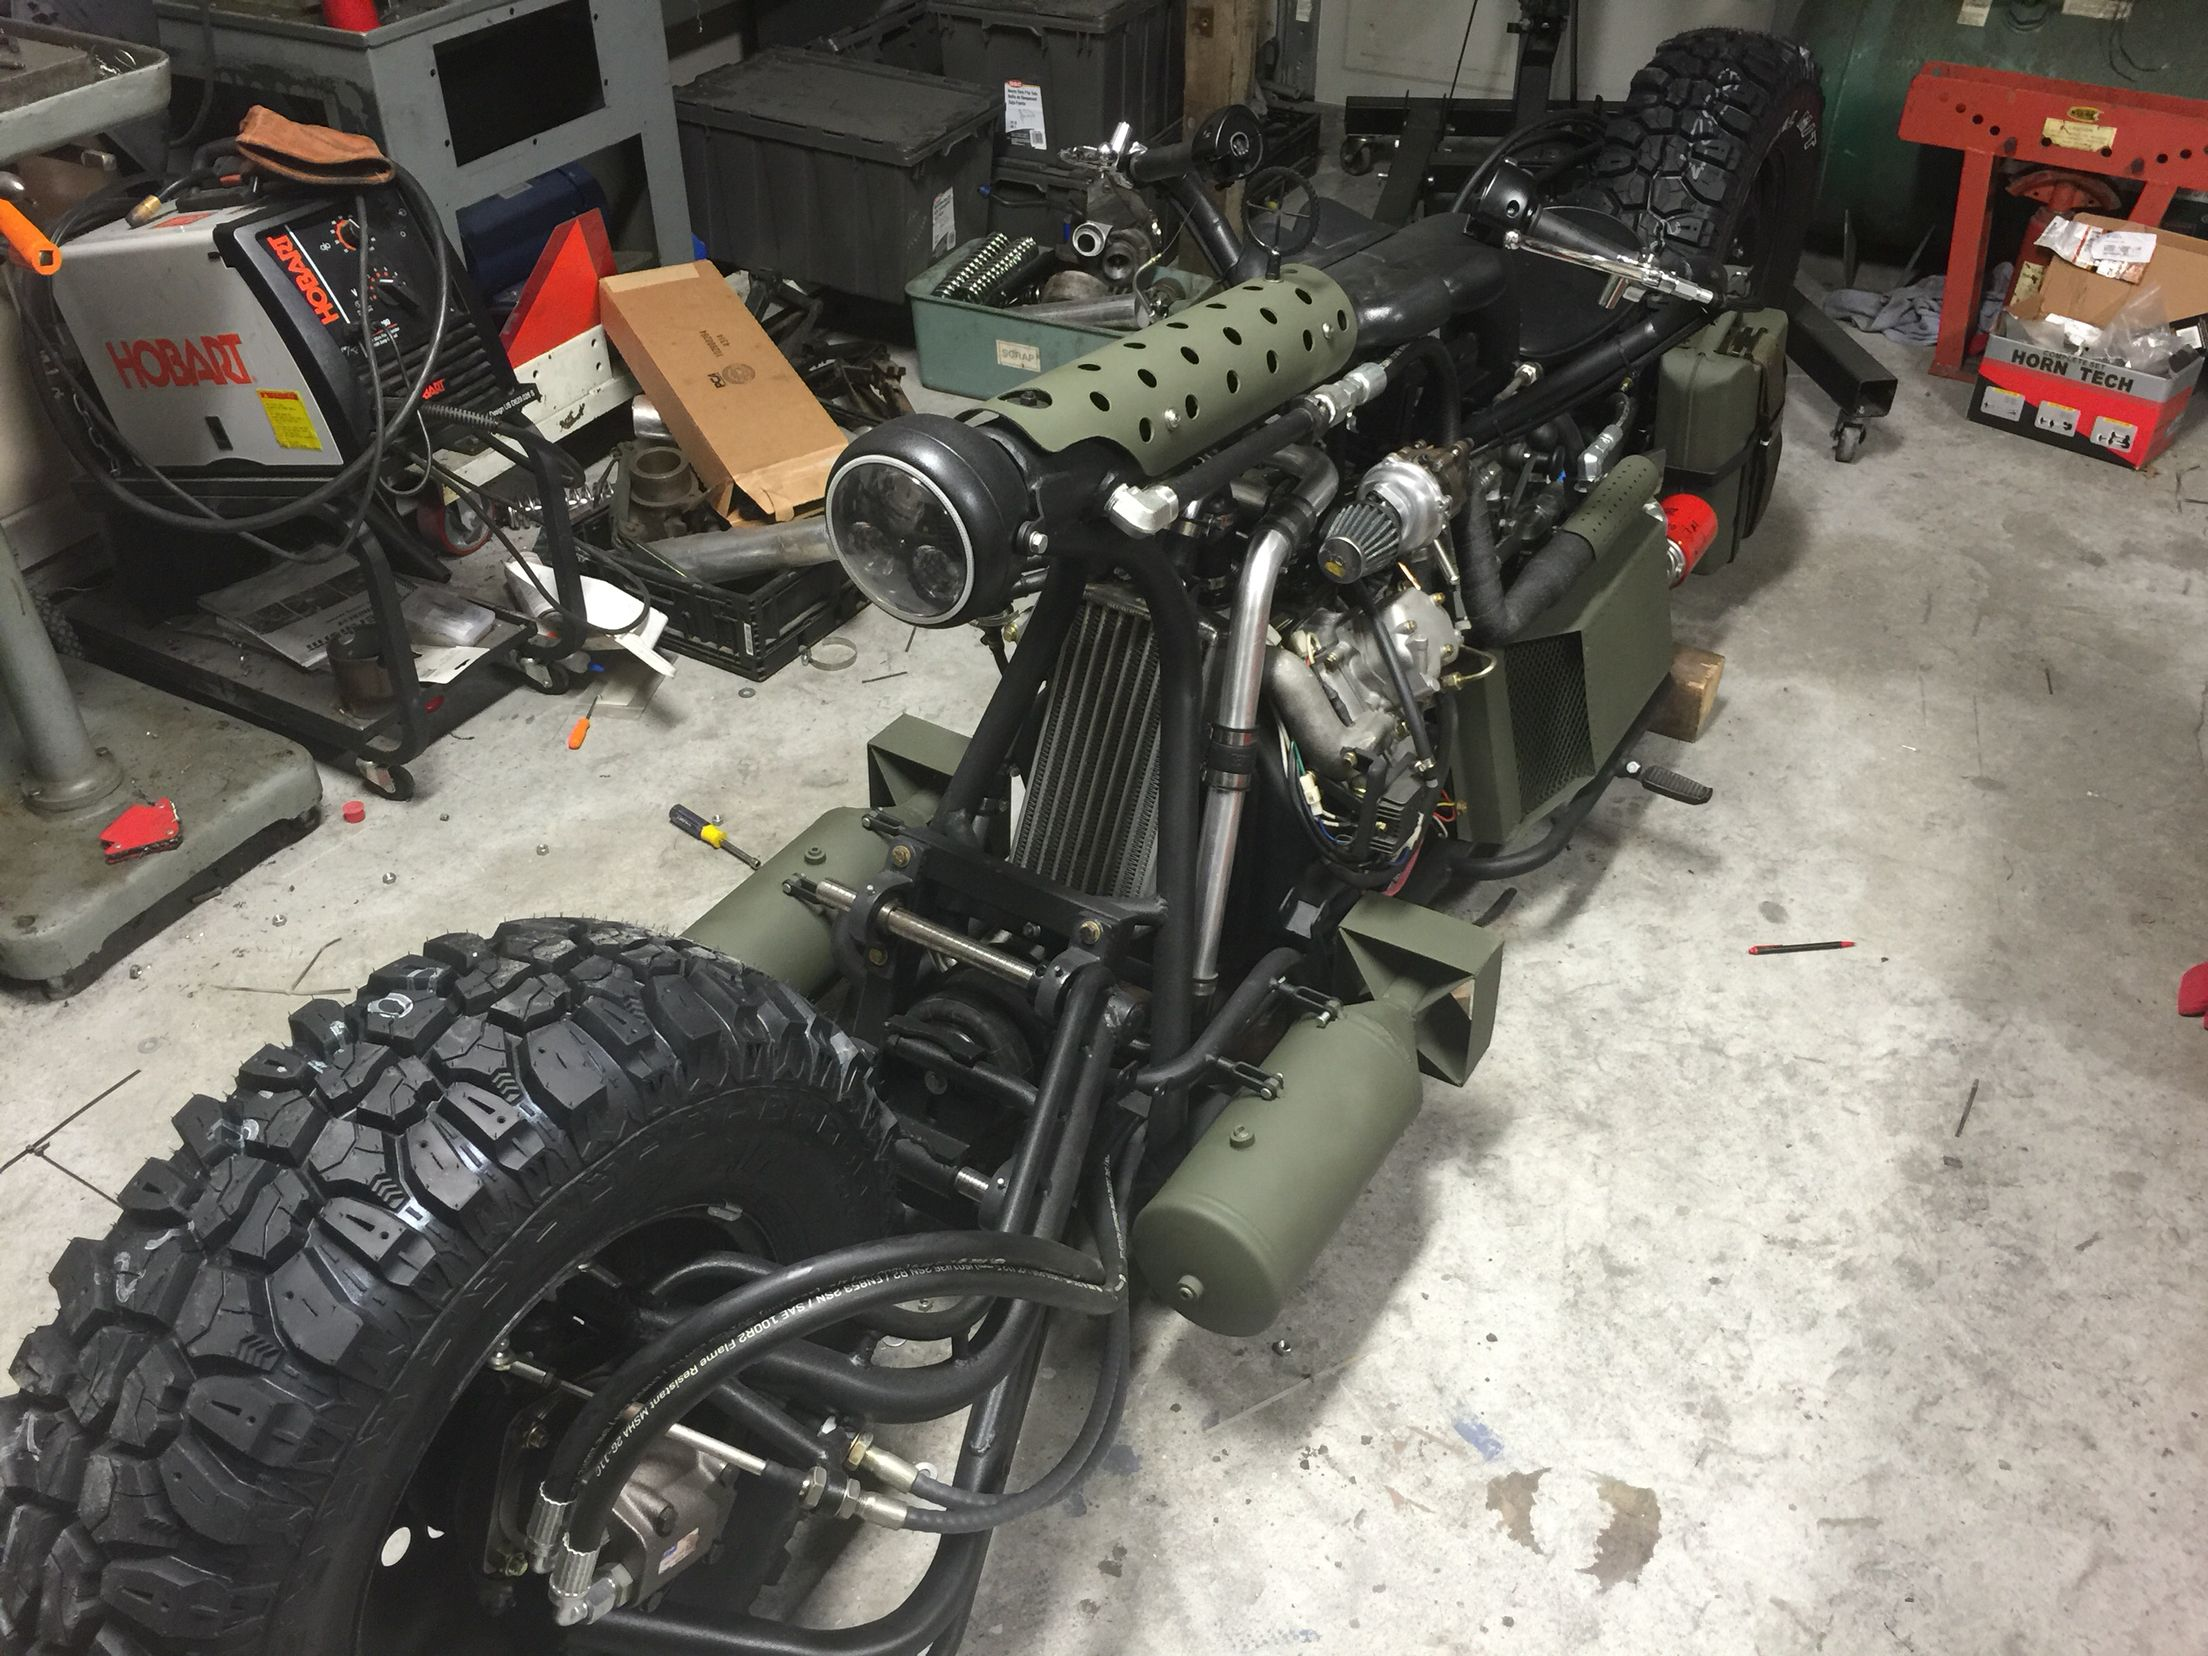 New tires for the diesel motorcycle